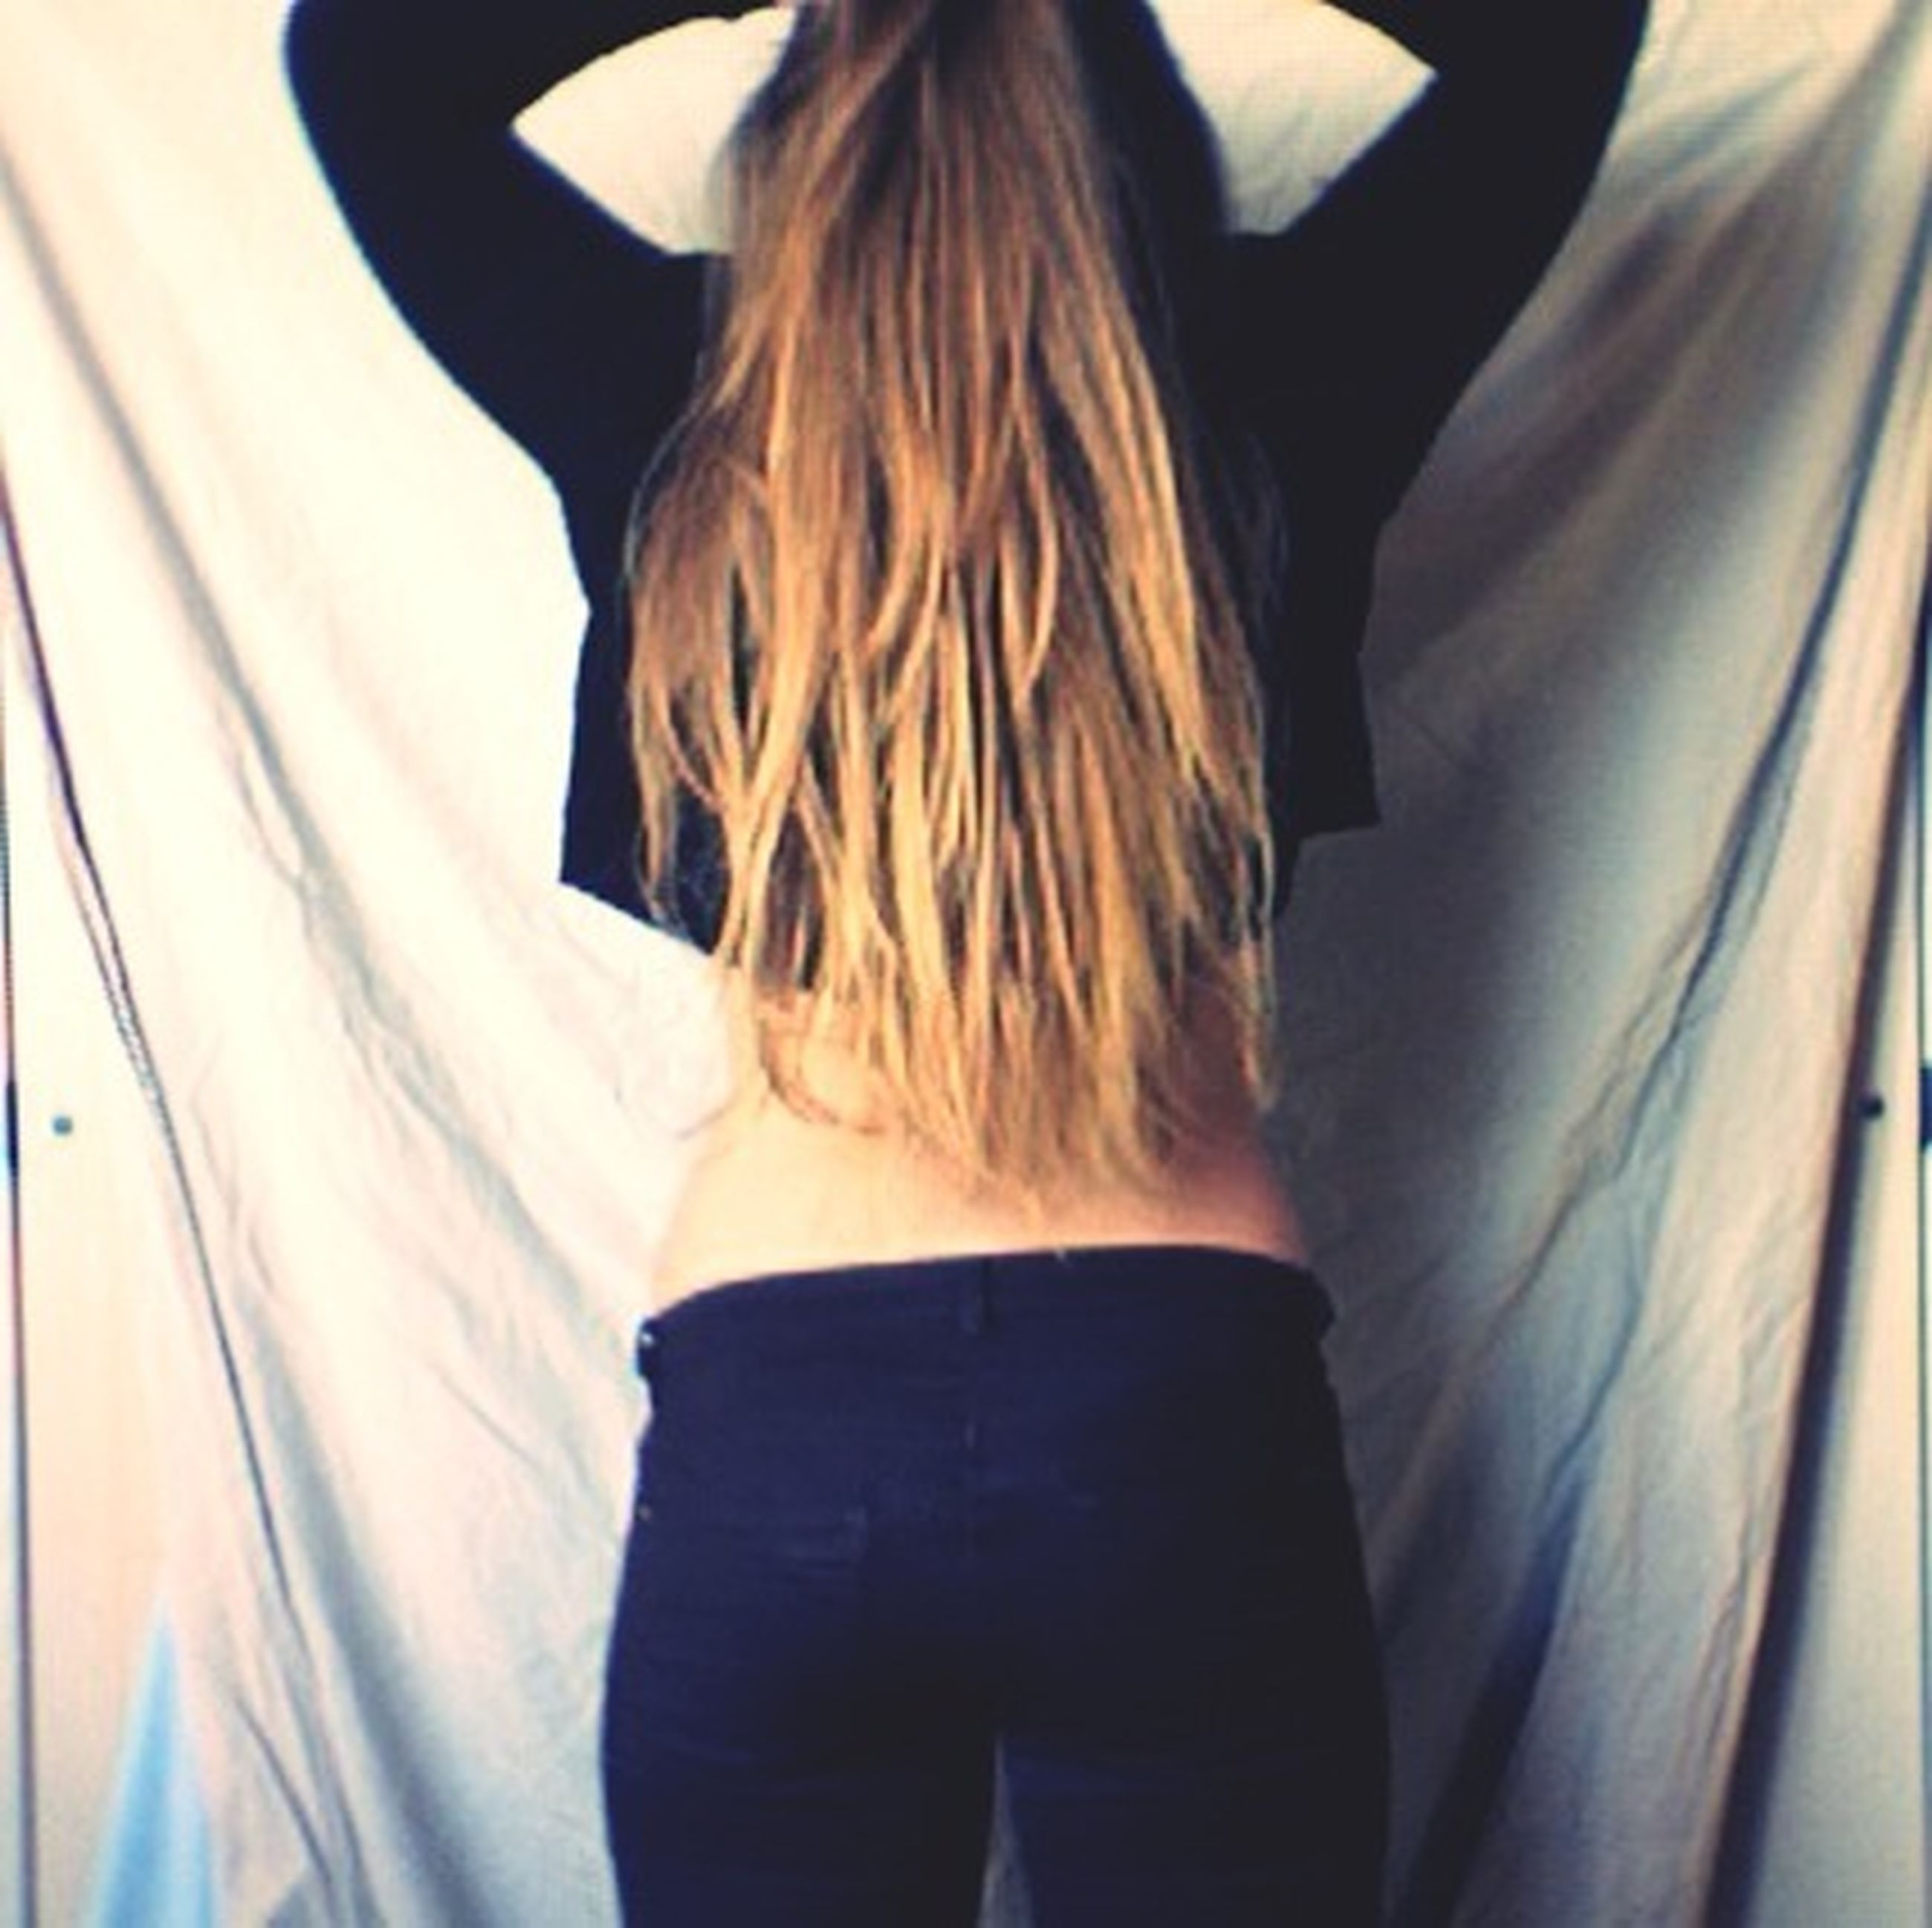 lifestyles, leisure activity, young adult, casual clothing, standing, long hair, young women, rear view, indoors, person, waist up, three quarter length, headshot, front view, brown hair, side view, day